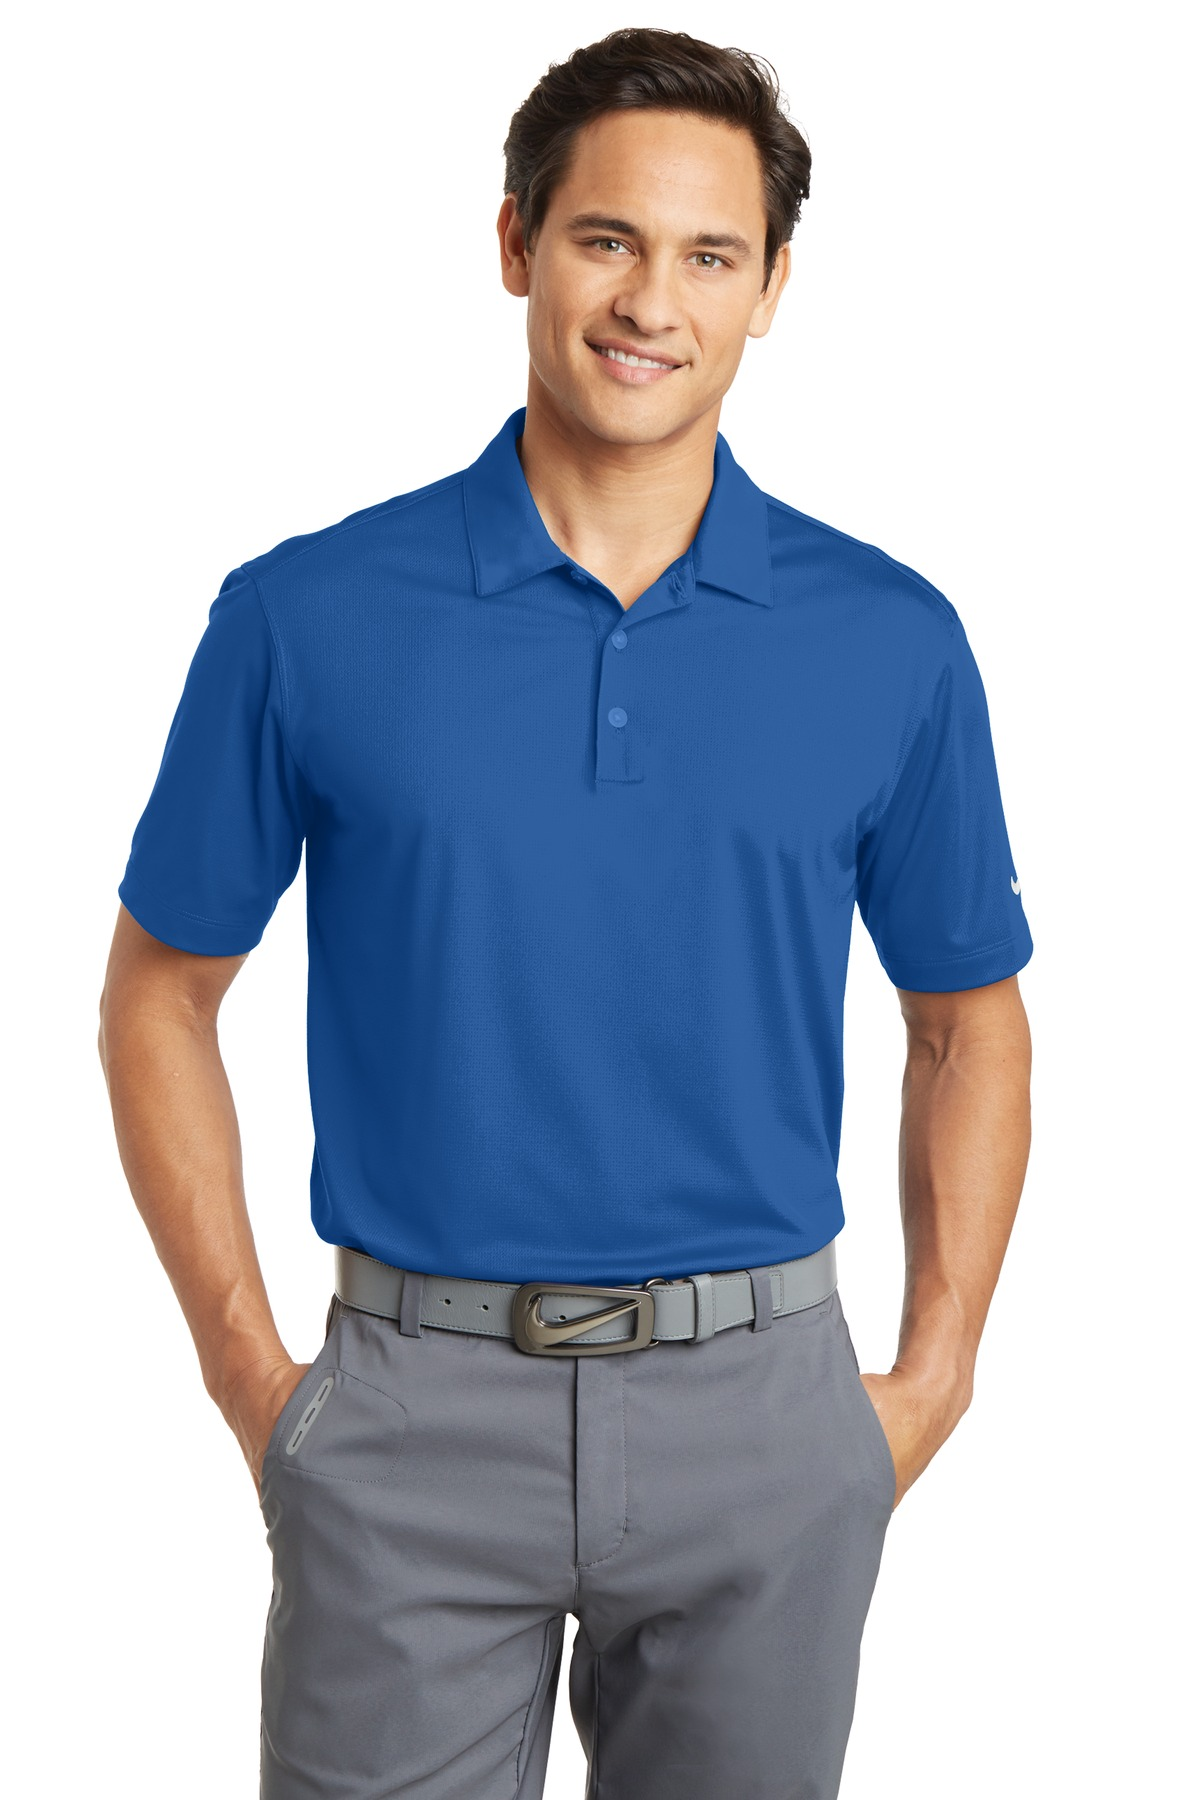 Nike Dri-FIT Vertical Mesh Polo. 637167 - Gym Blue